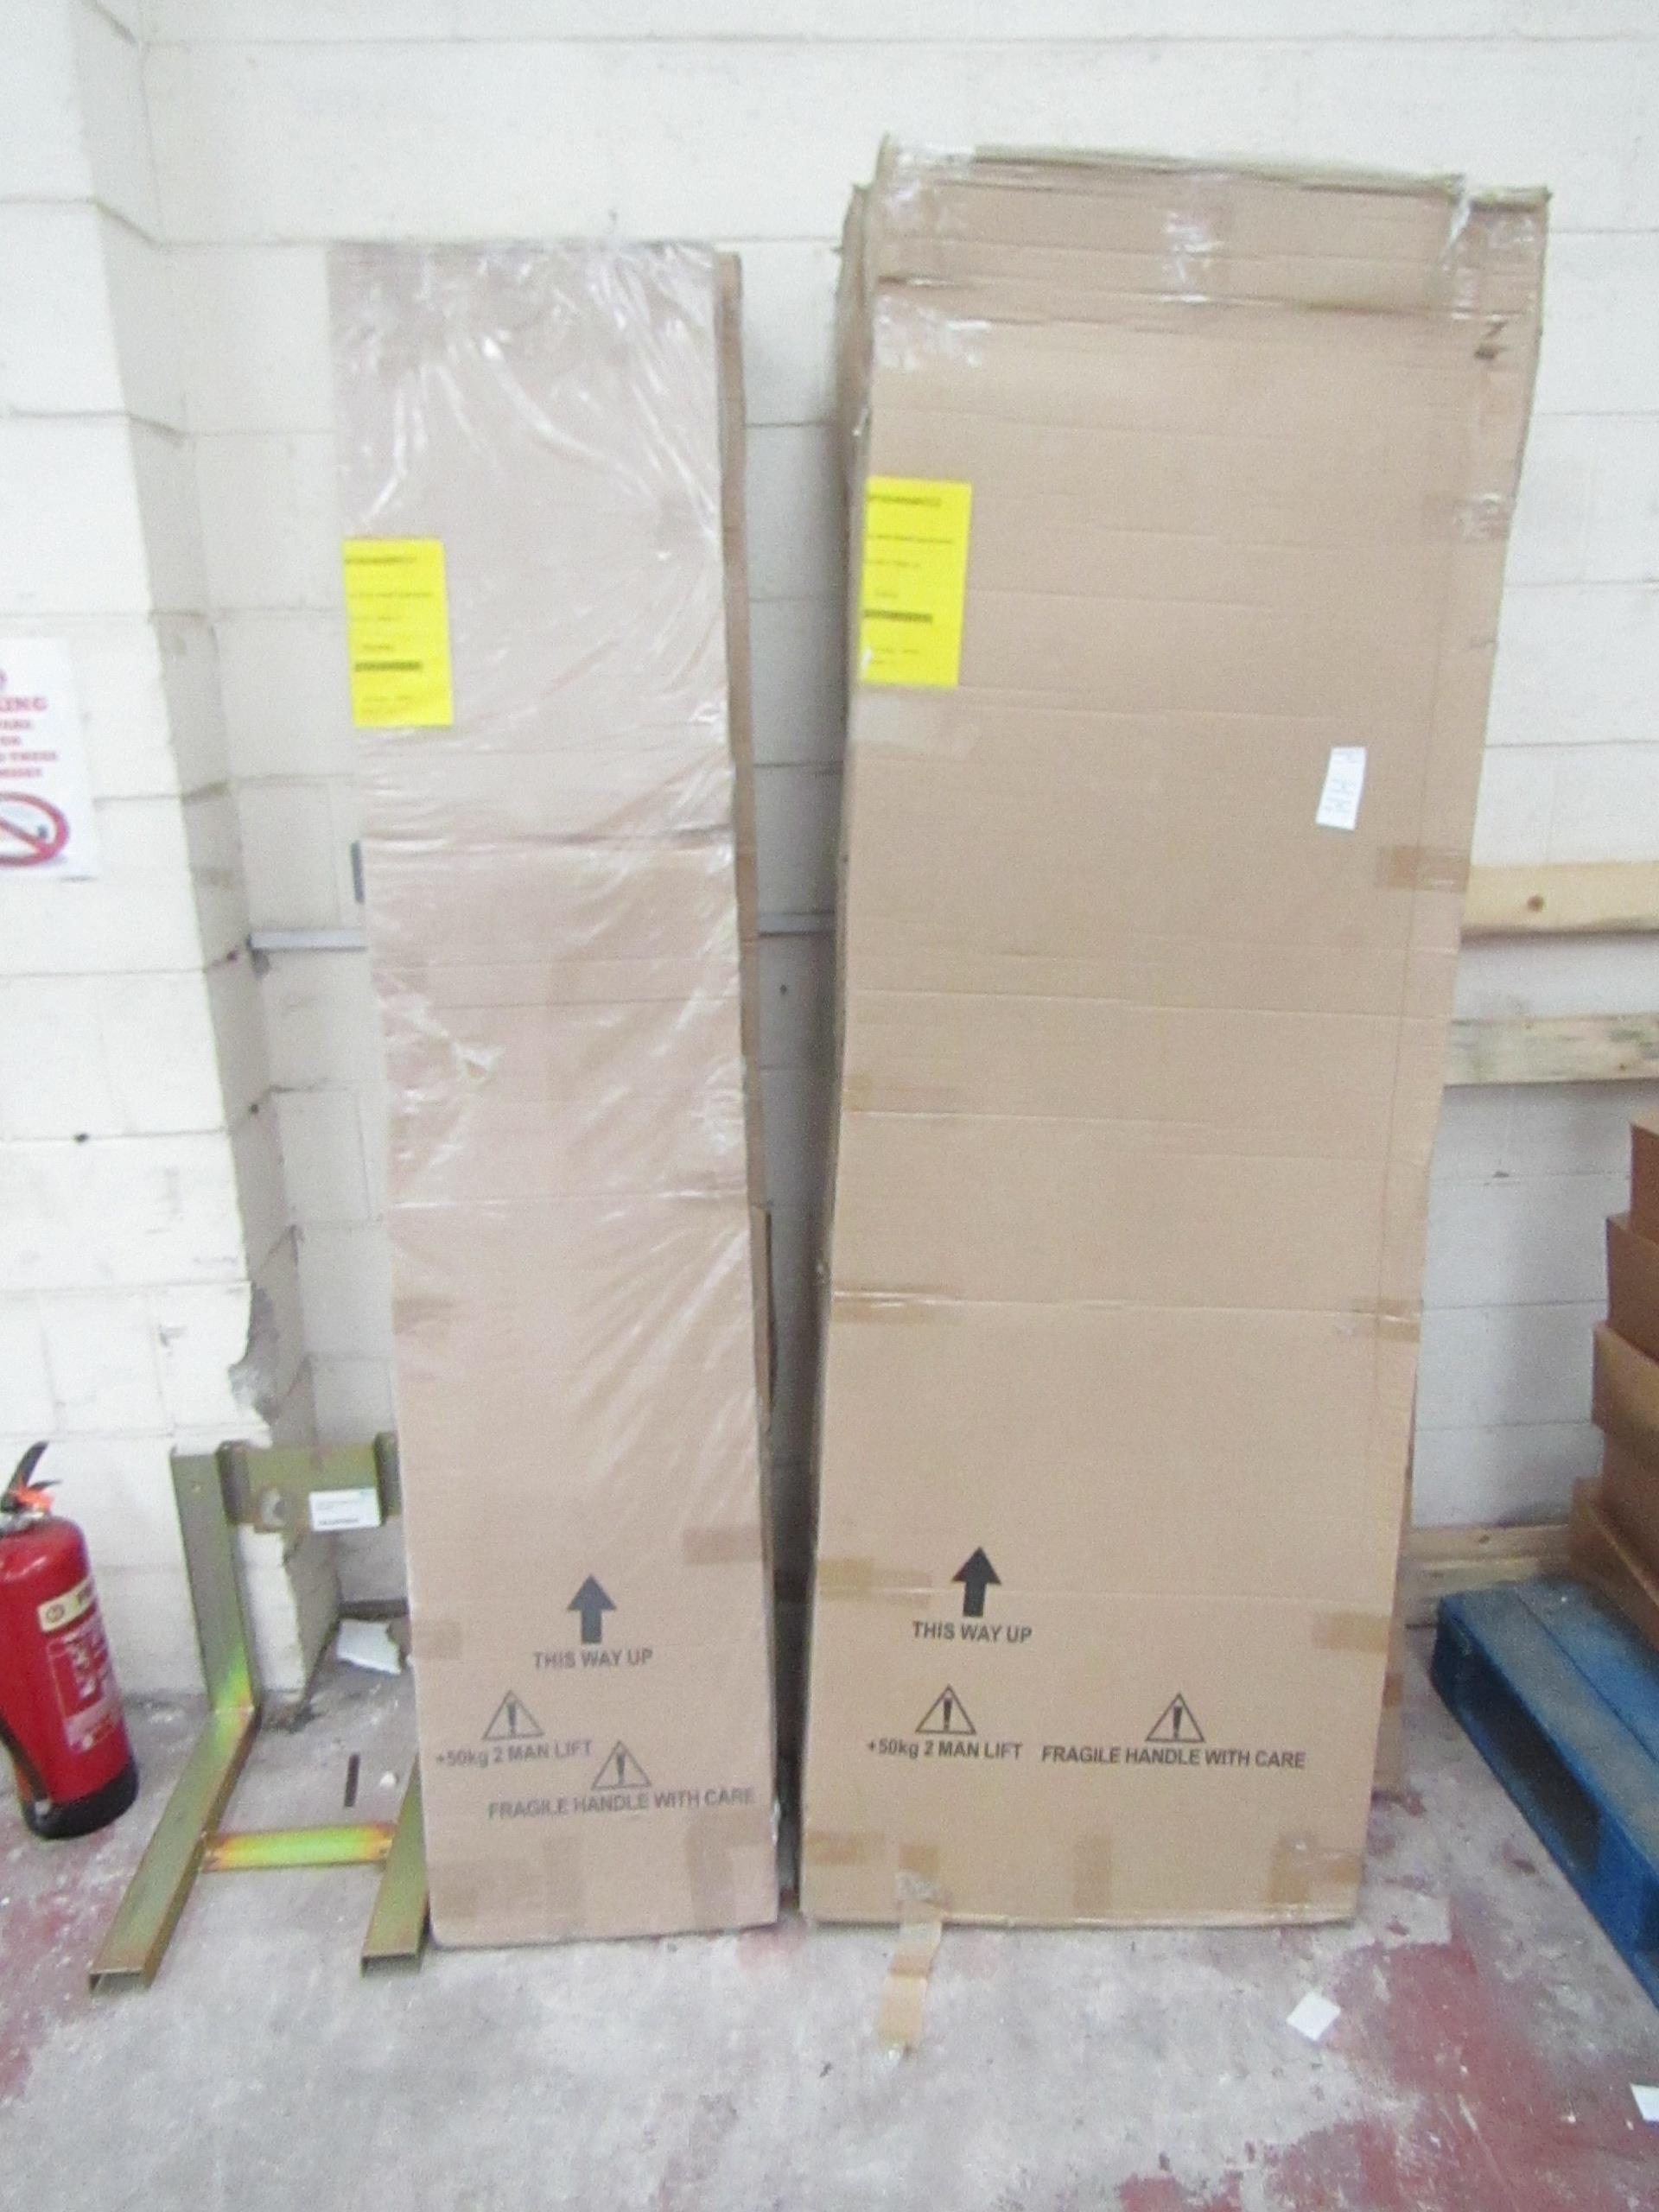 Manhattan glass Quad shower enclosure (no Tray), 1000x800m, unused and boxed, comes in 2 boxes which - Image 2 of 2